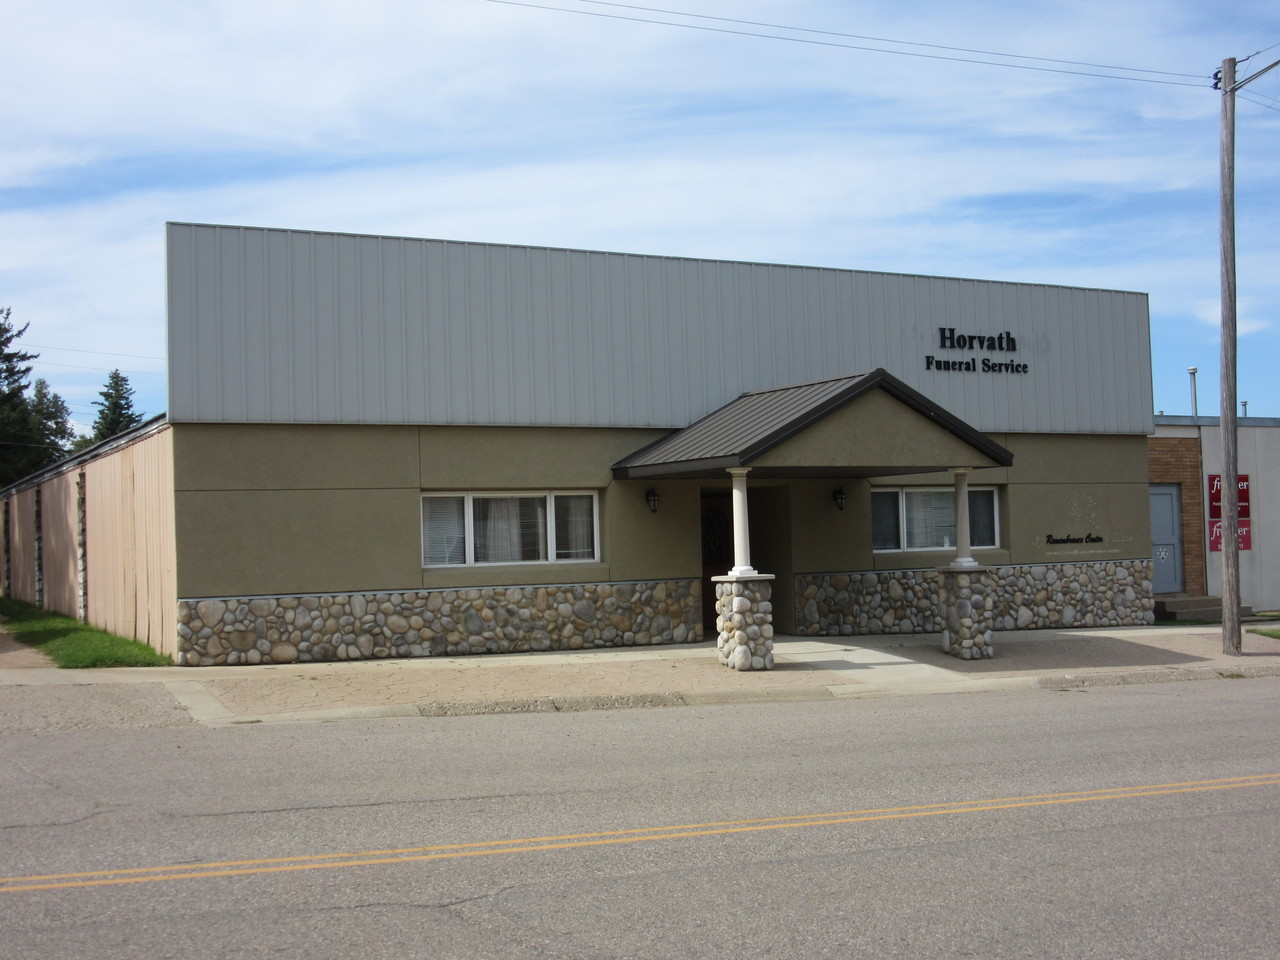 Horvath Funeral Services Balaton Minnesota